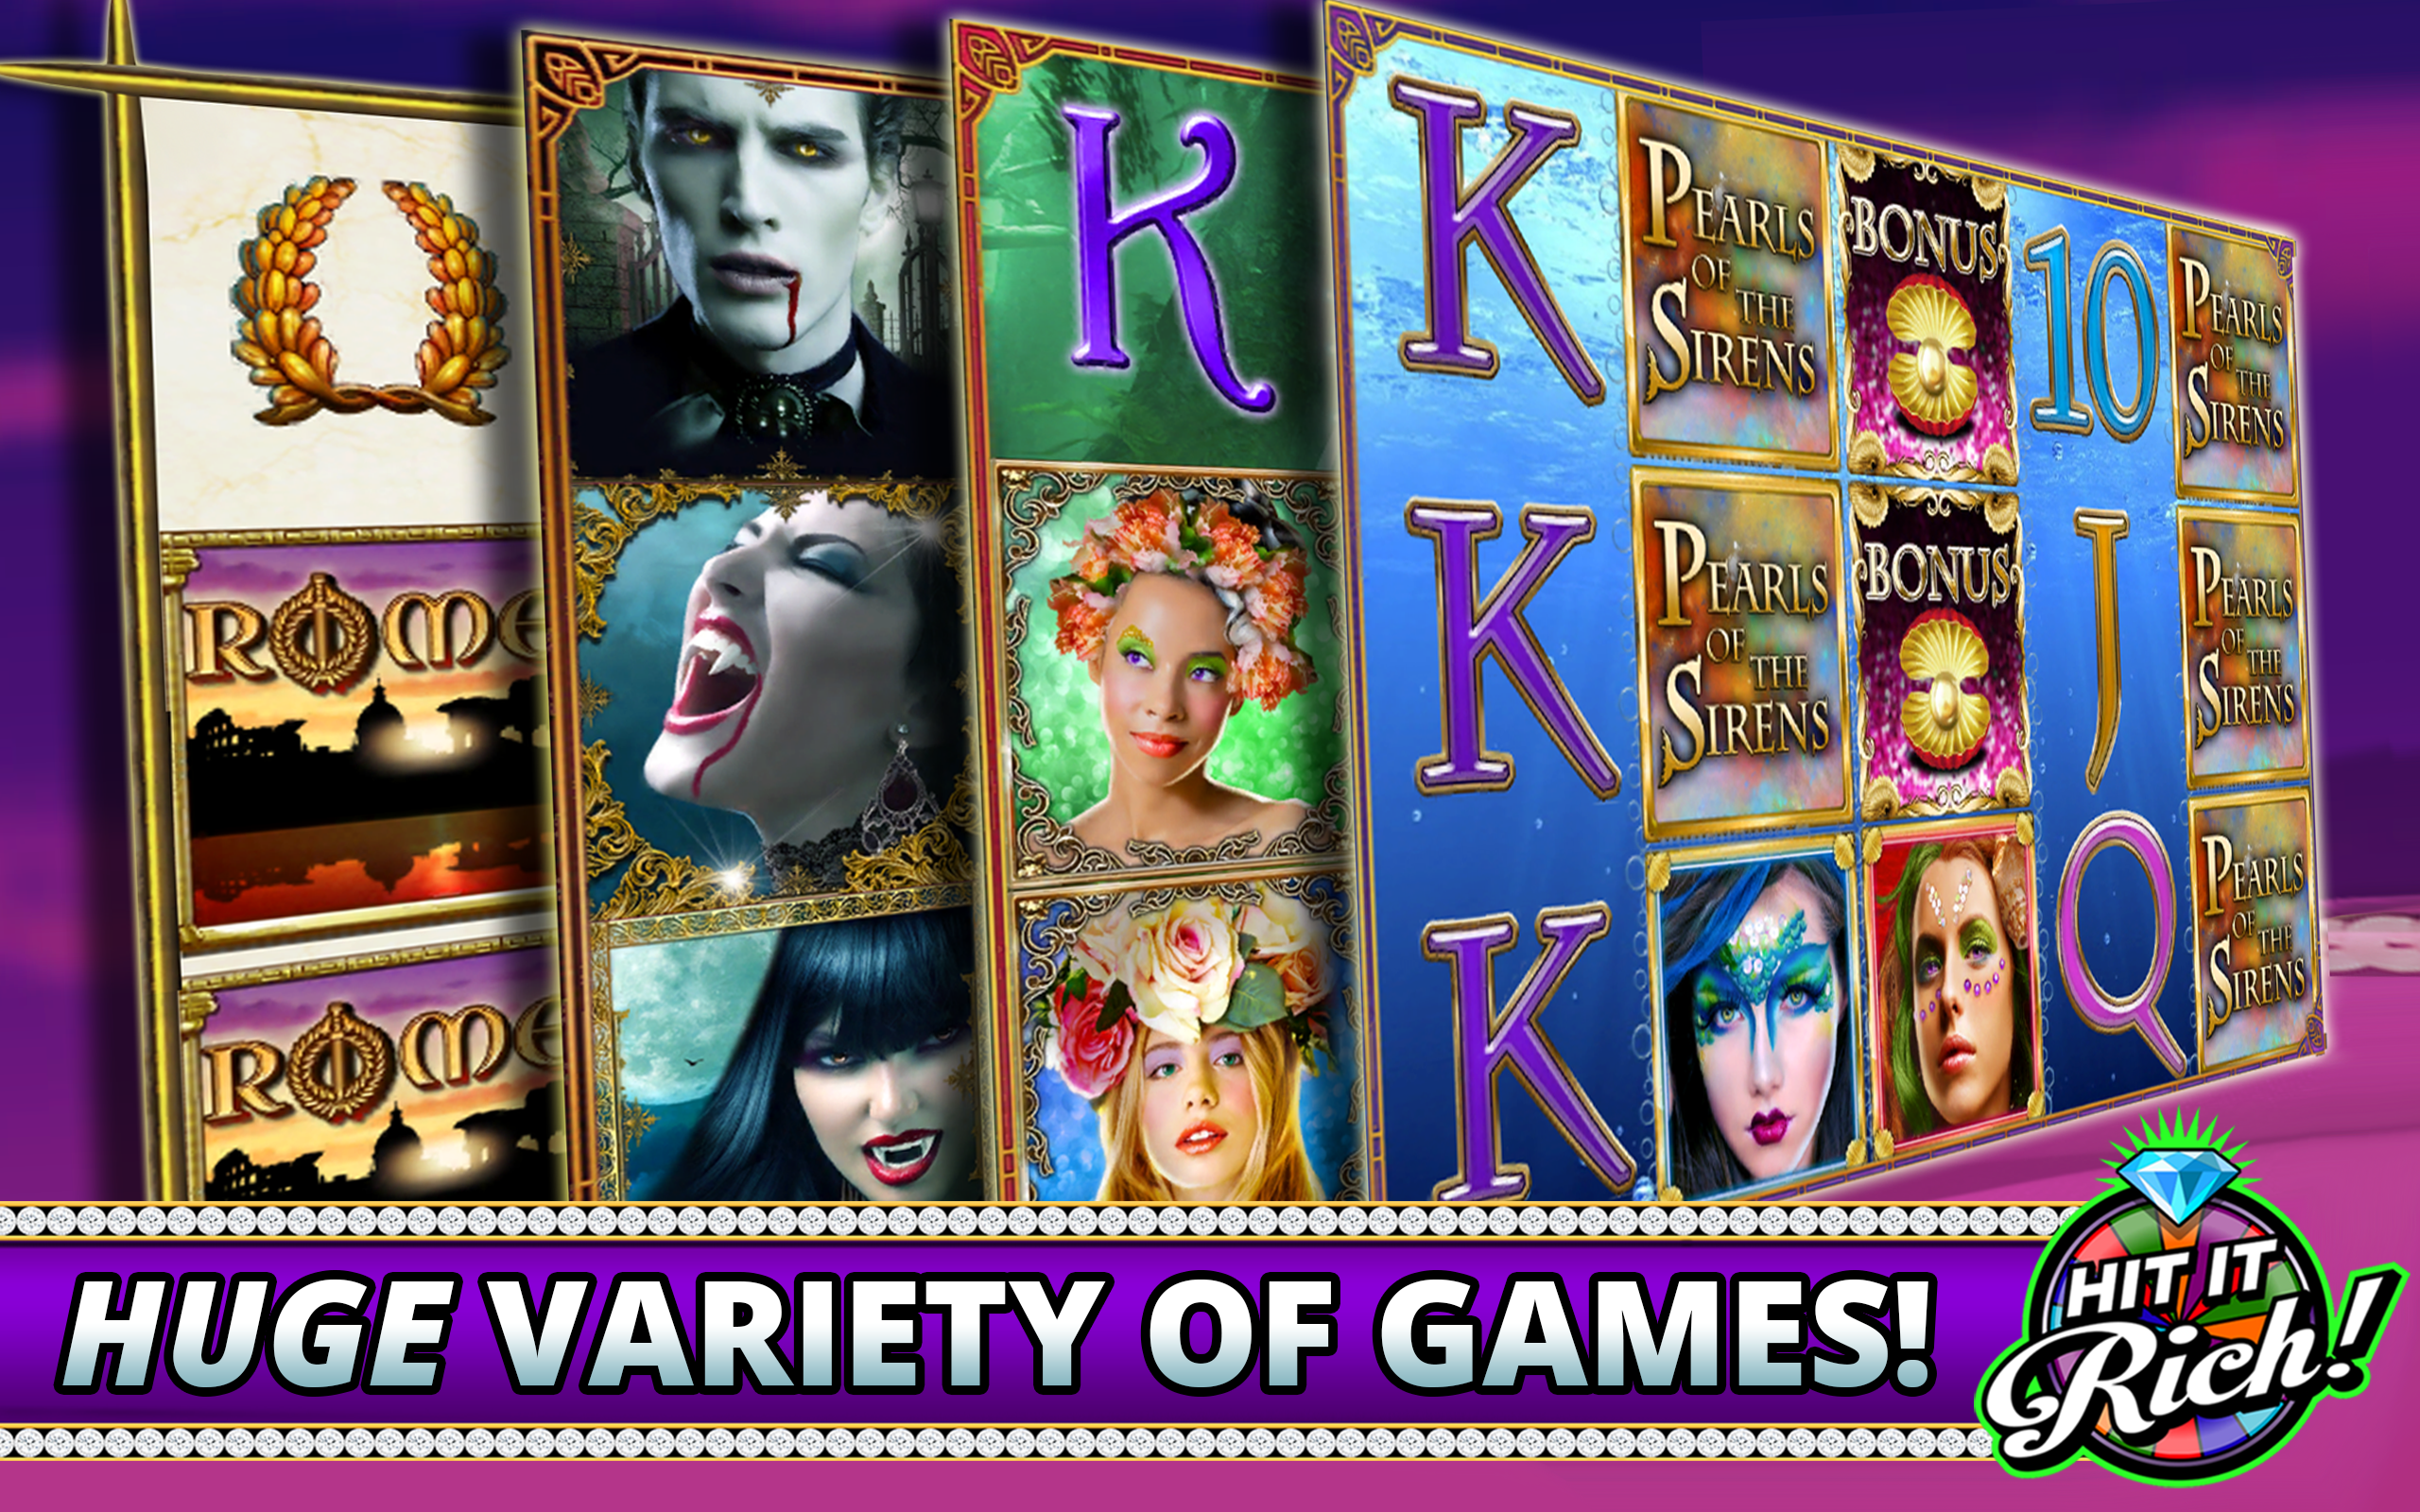 hit it rich casino slots